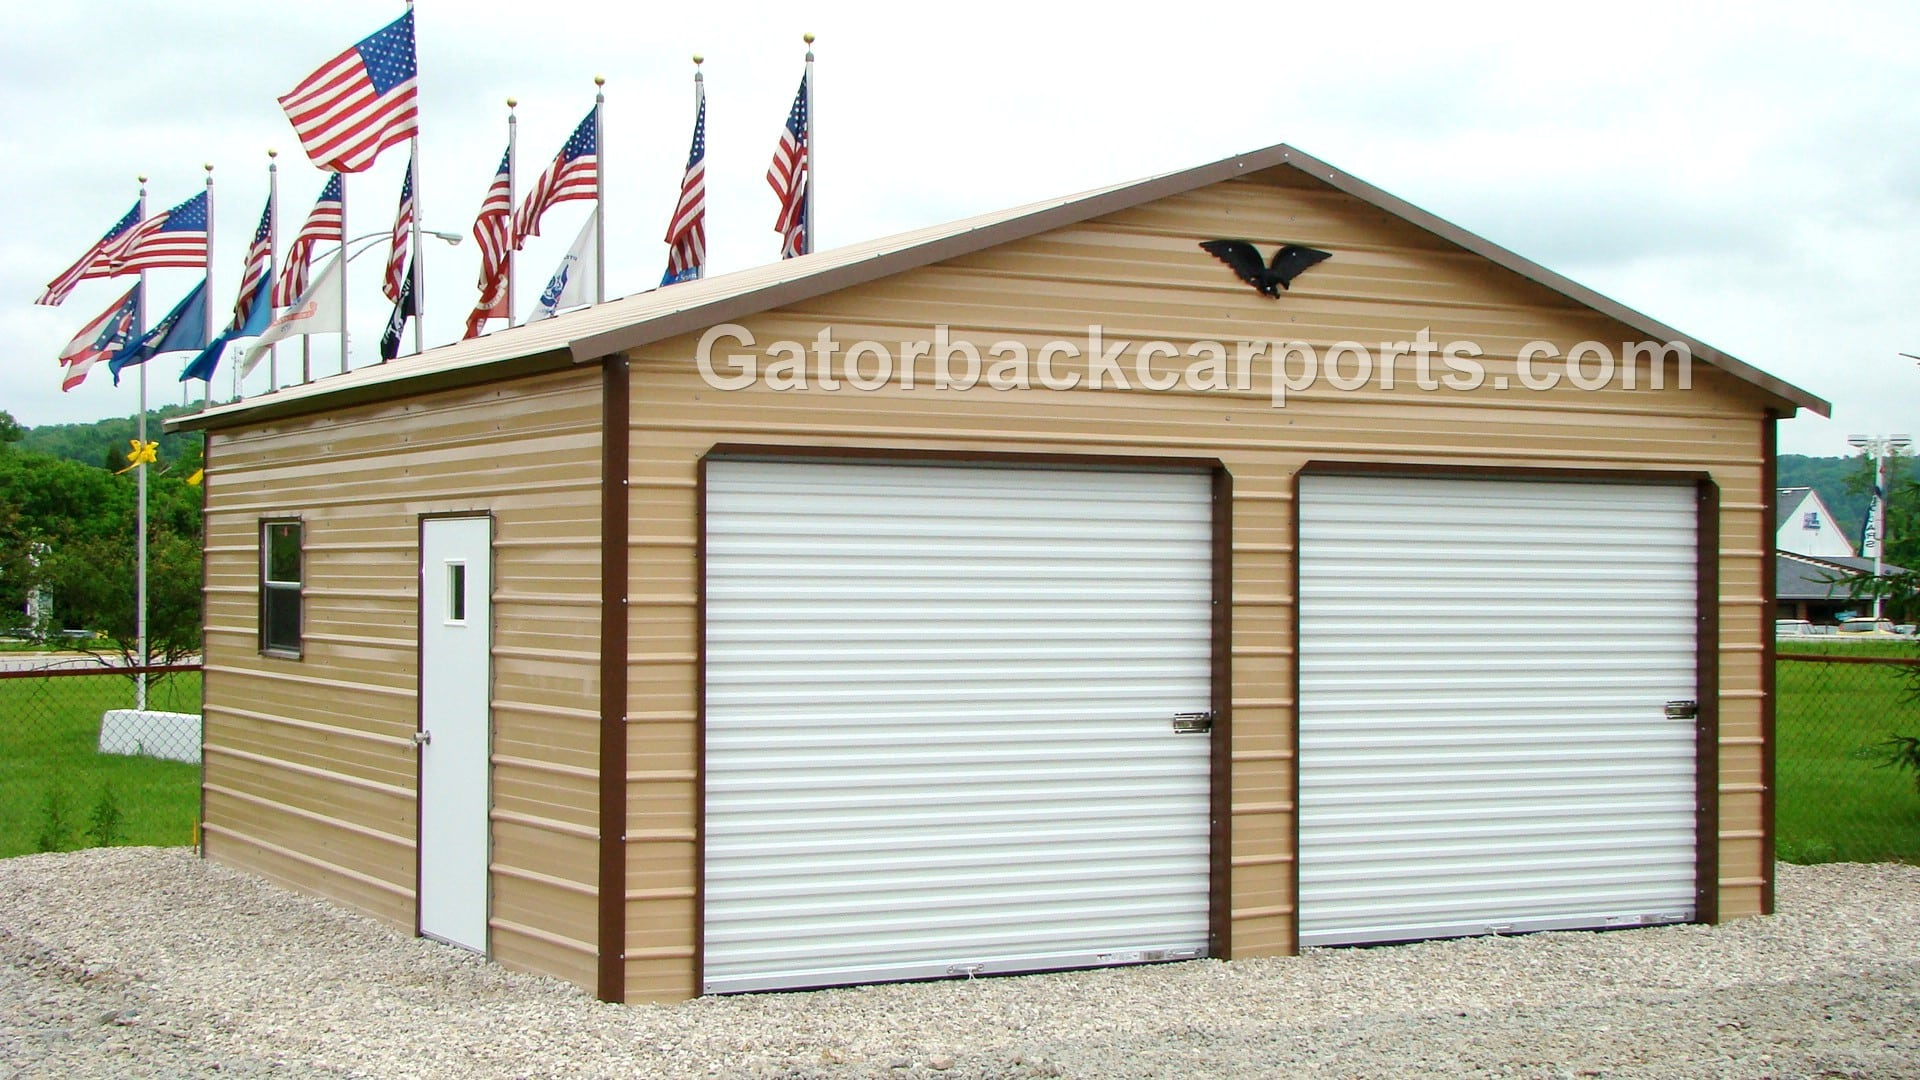 Colors gatorback carports for Garage car port